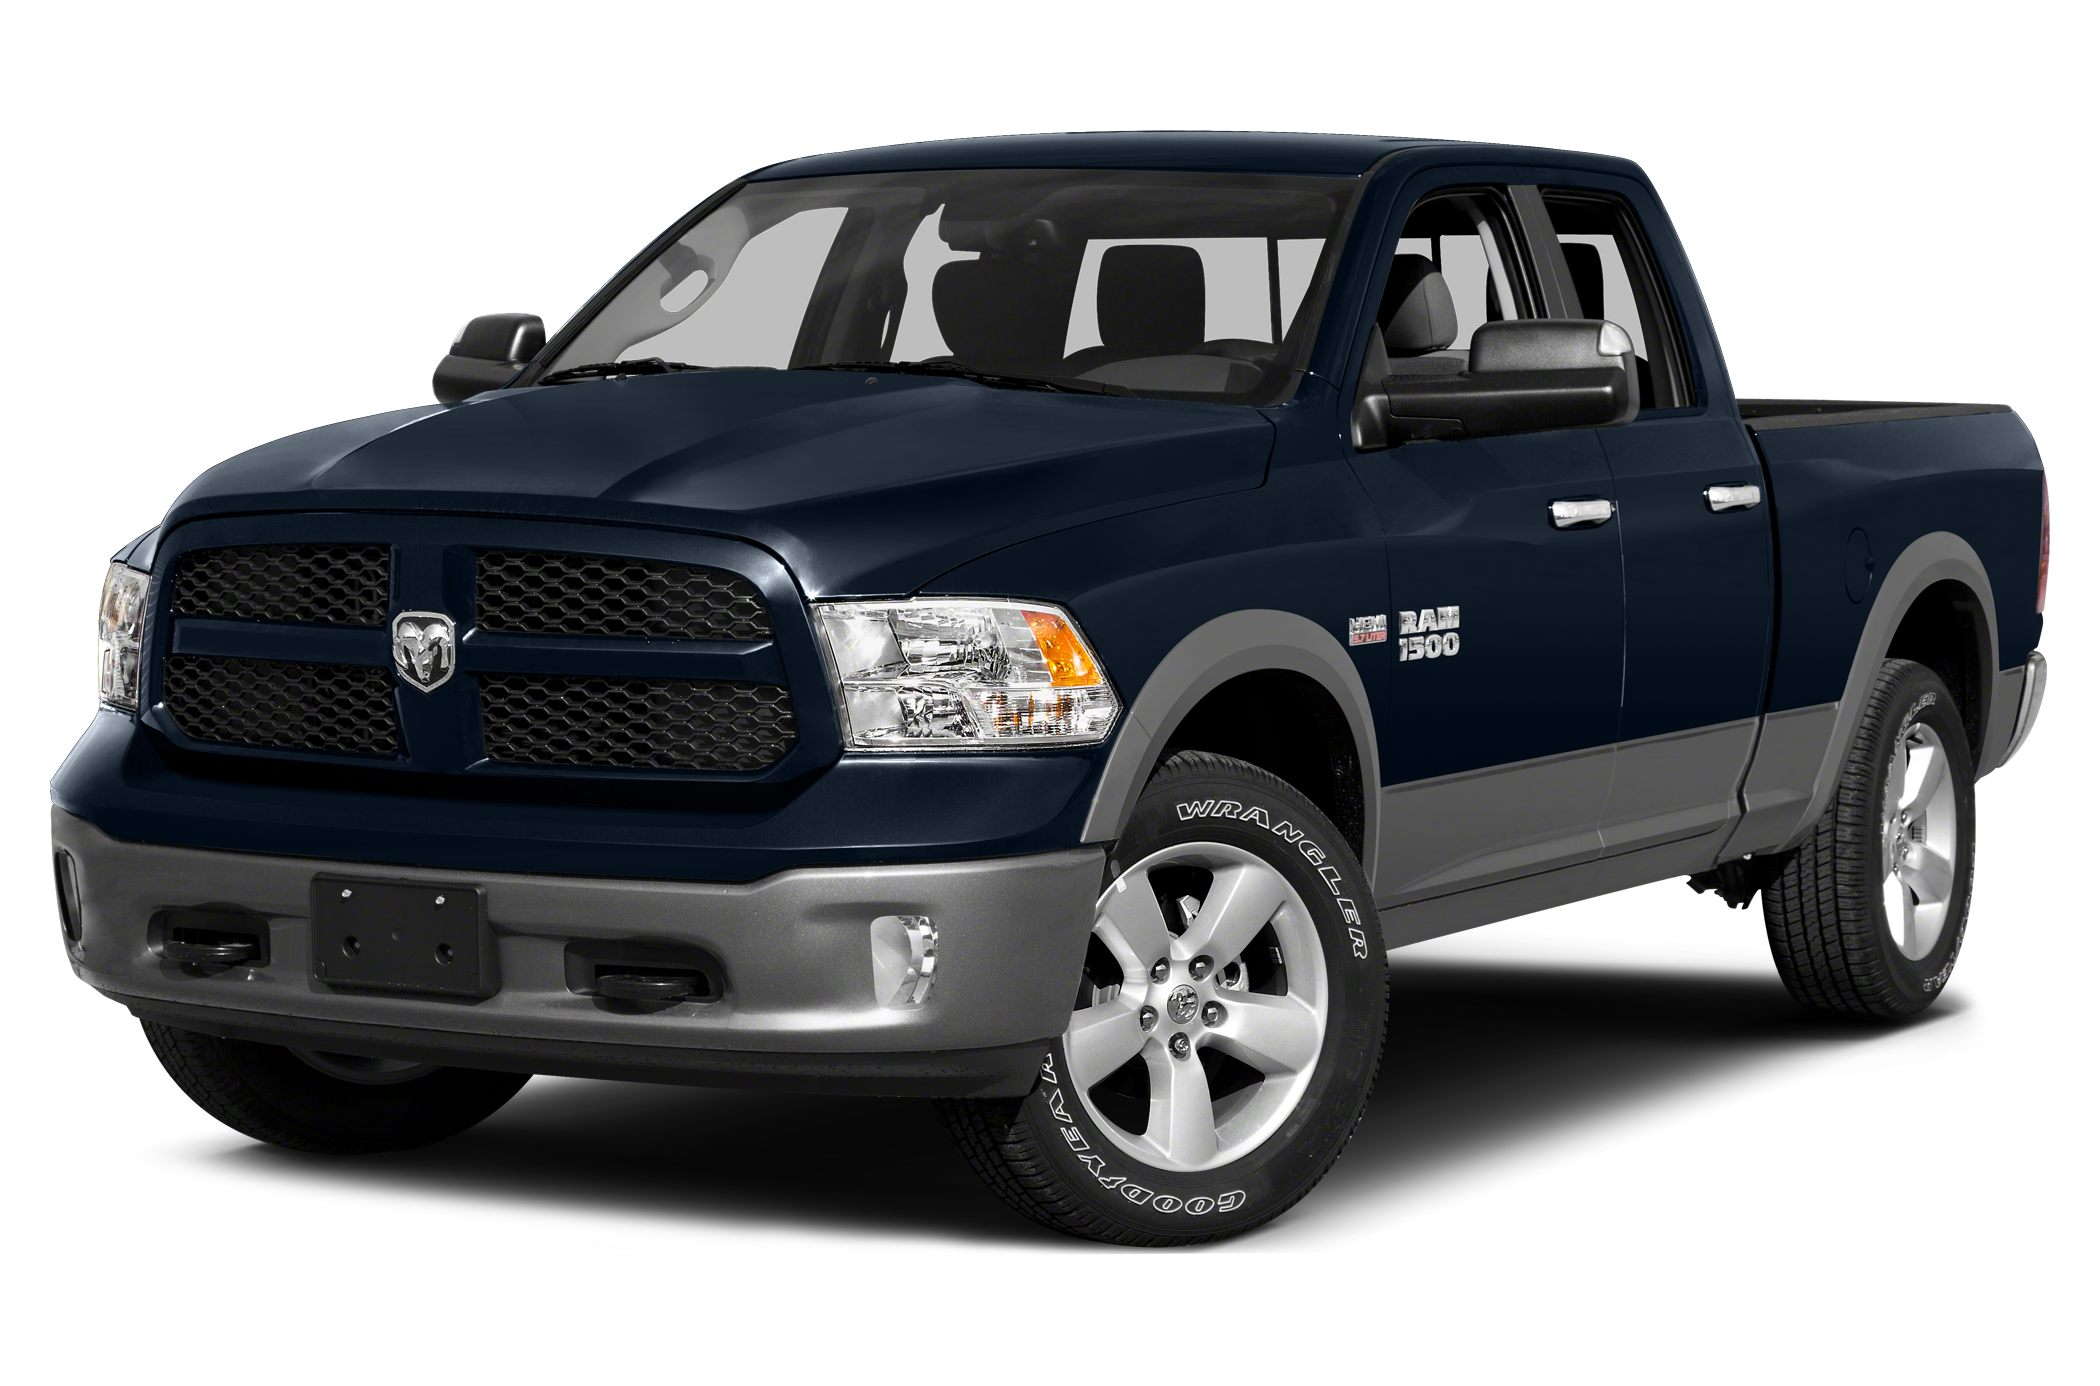 2013 RAM 1500 Laramie Crew Cab Pickup for sale in Pine Bluff for $0 with 22,926 miles